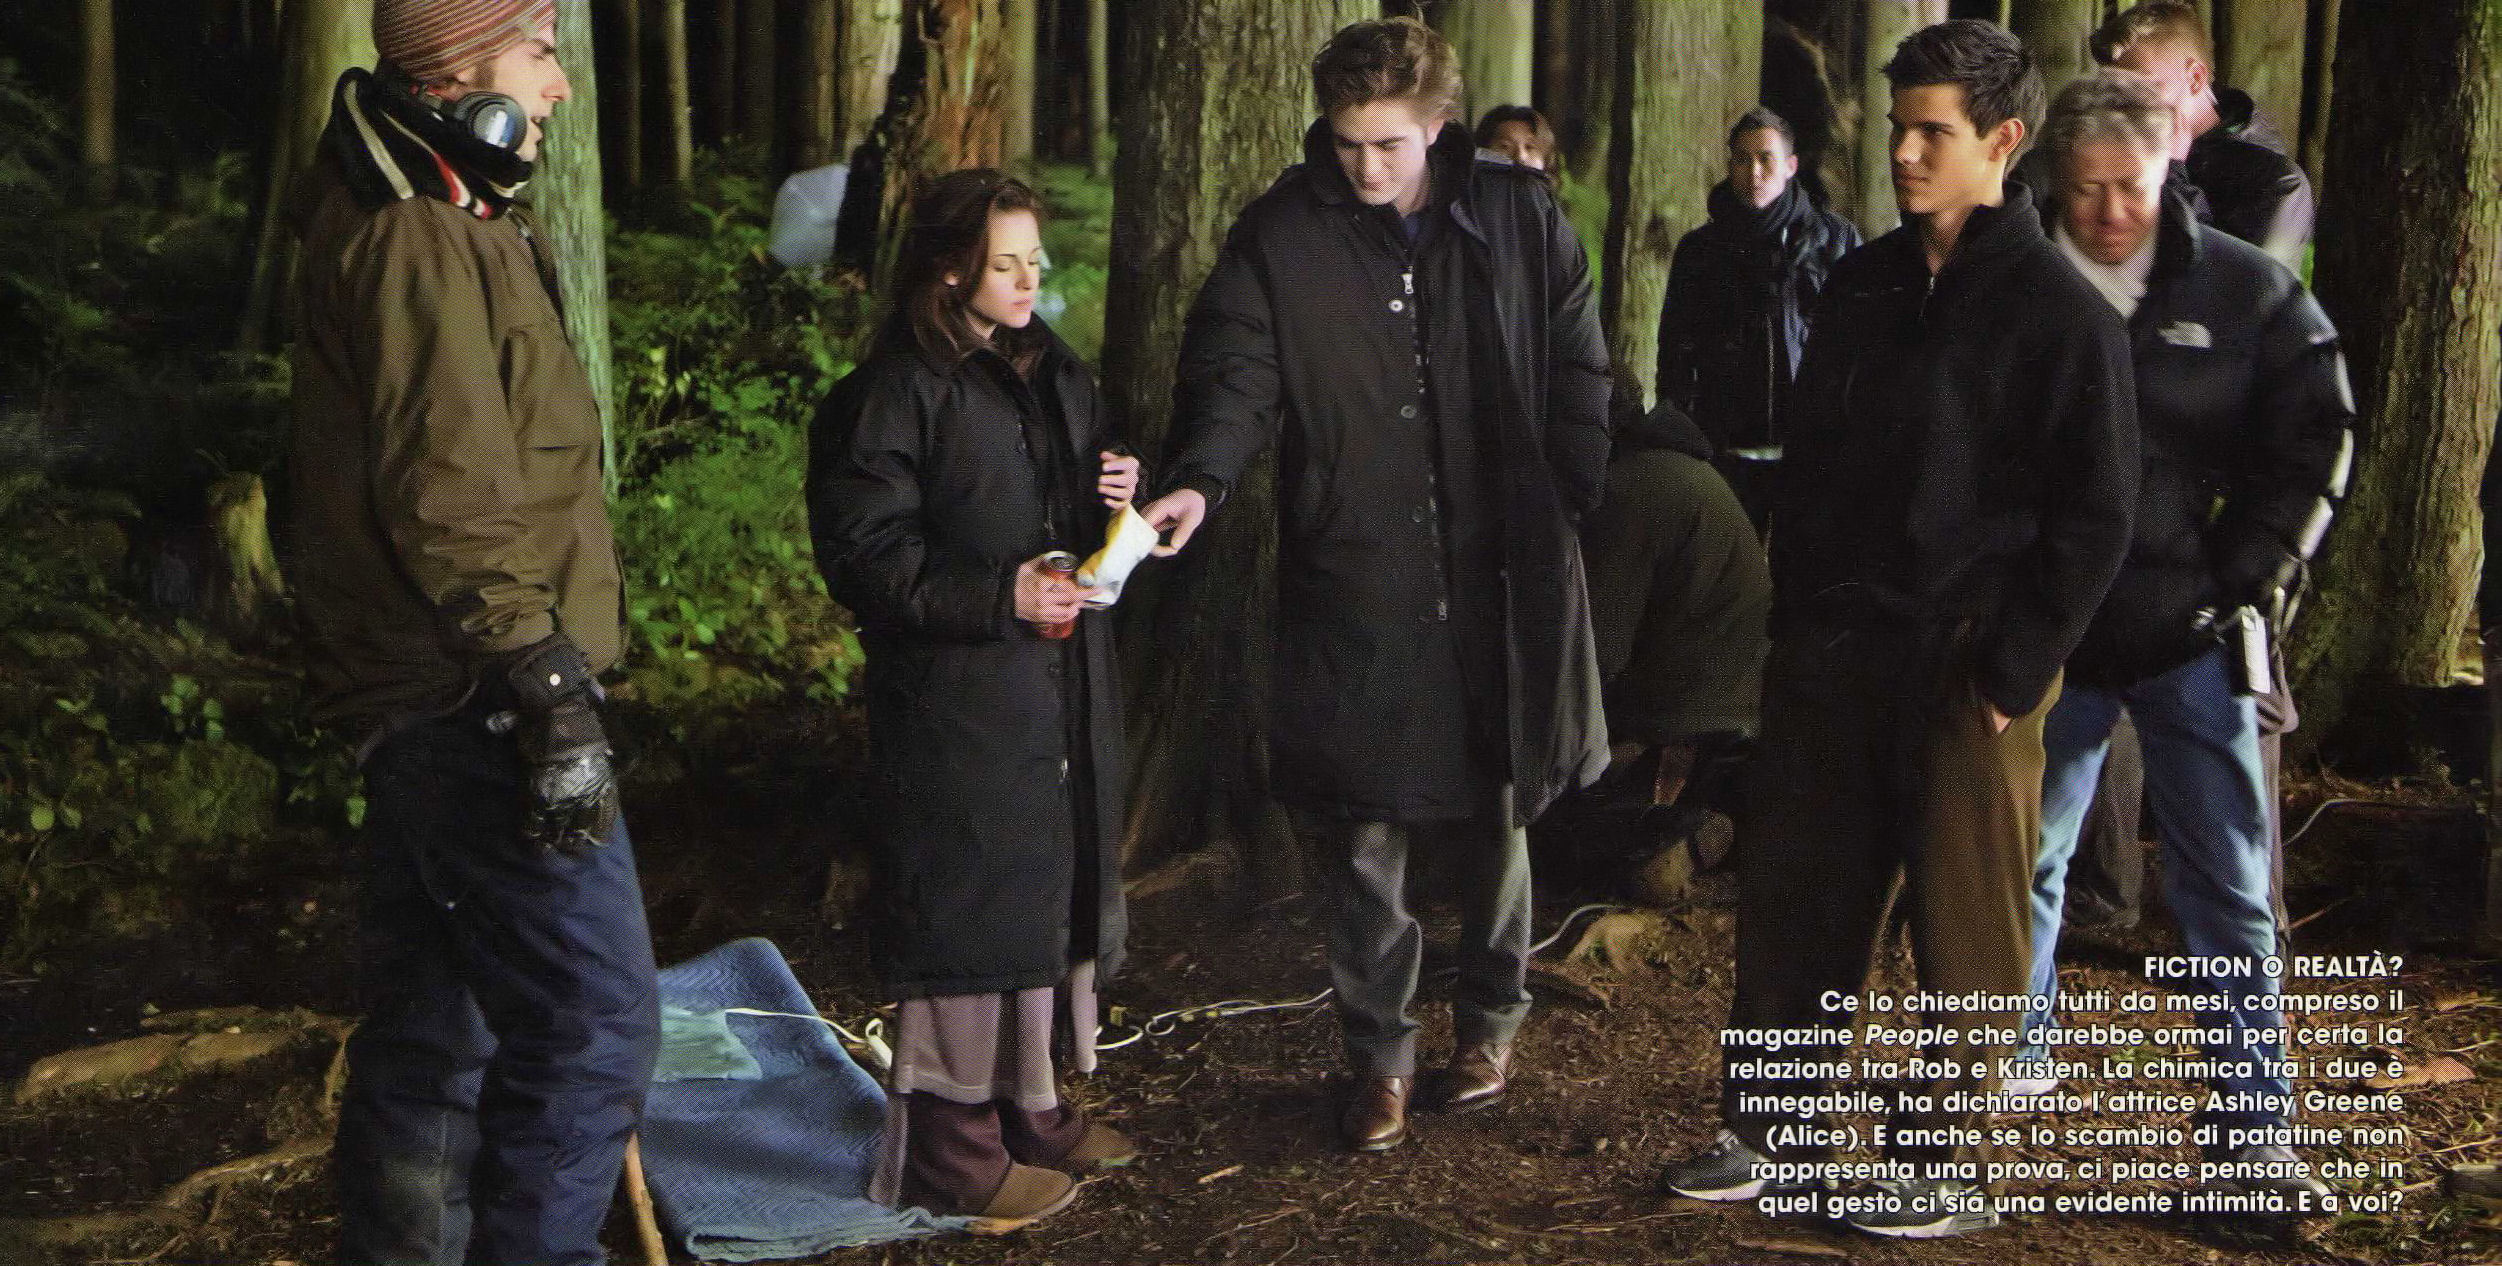 New Set picture from New Moon - Rob likes to steal Cibo